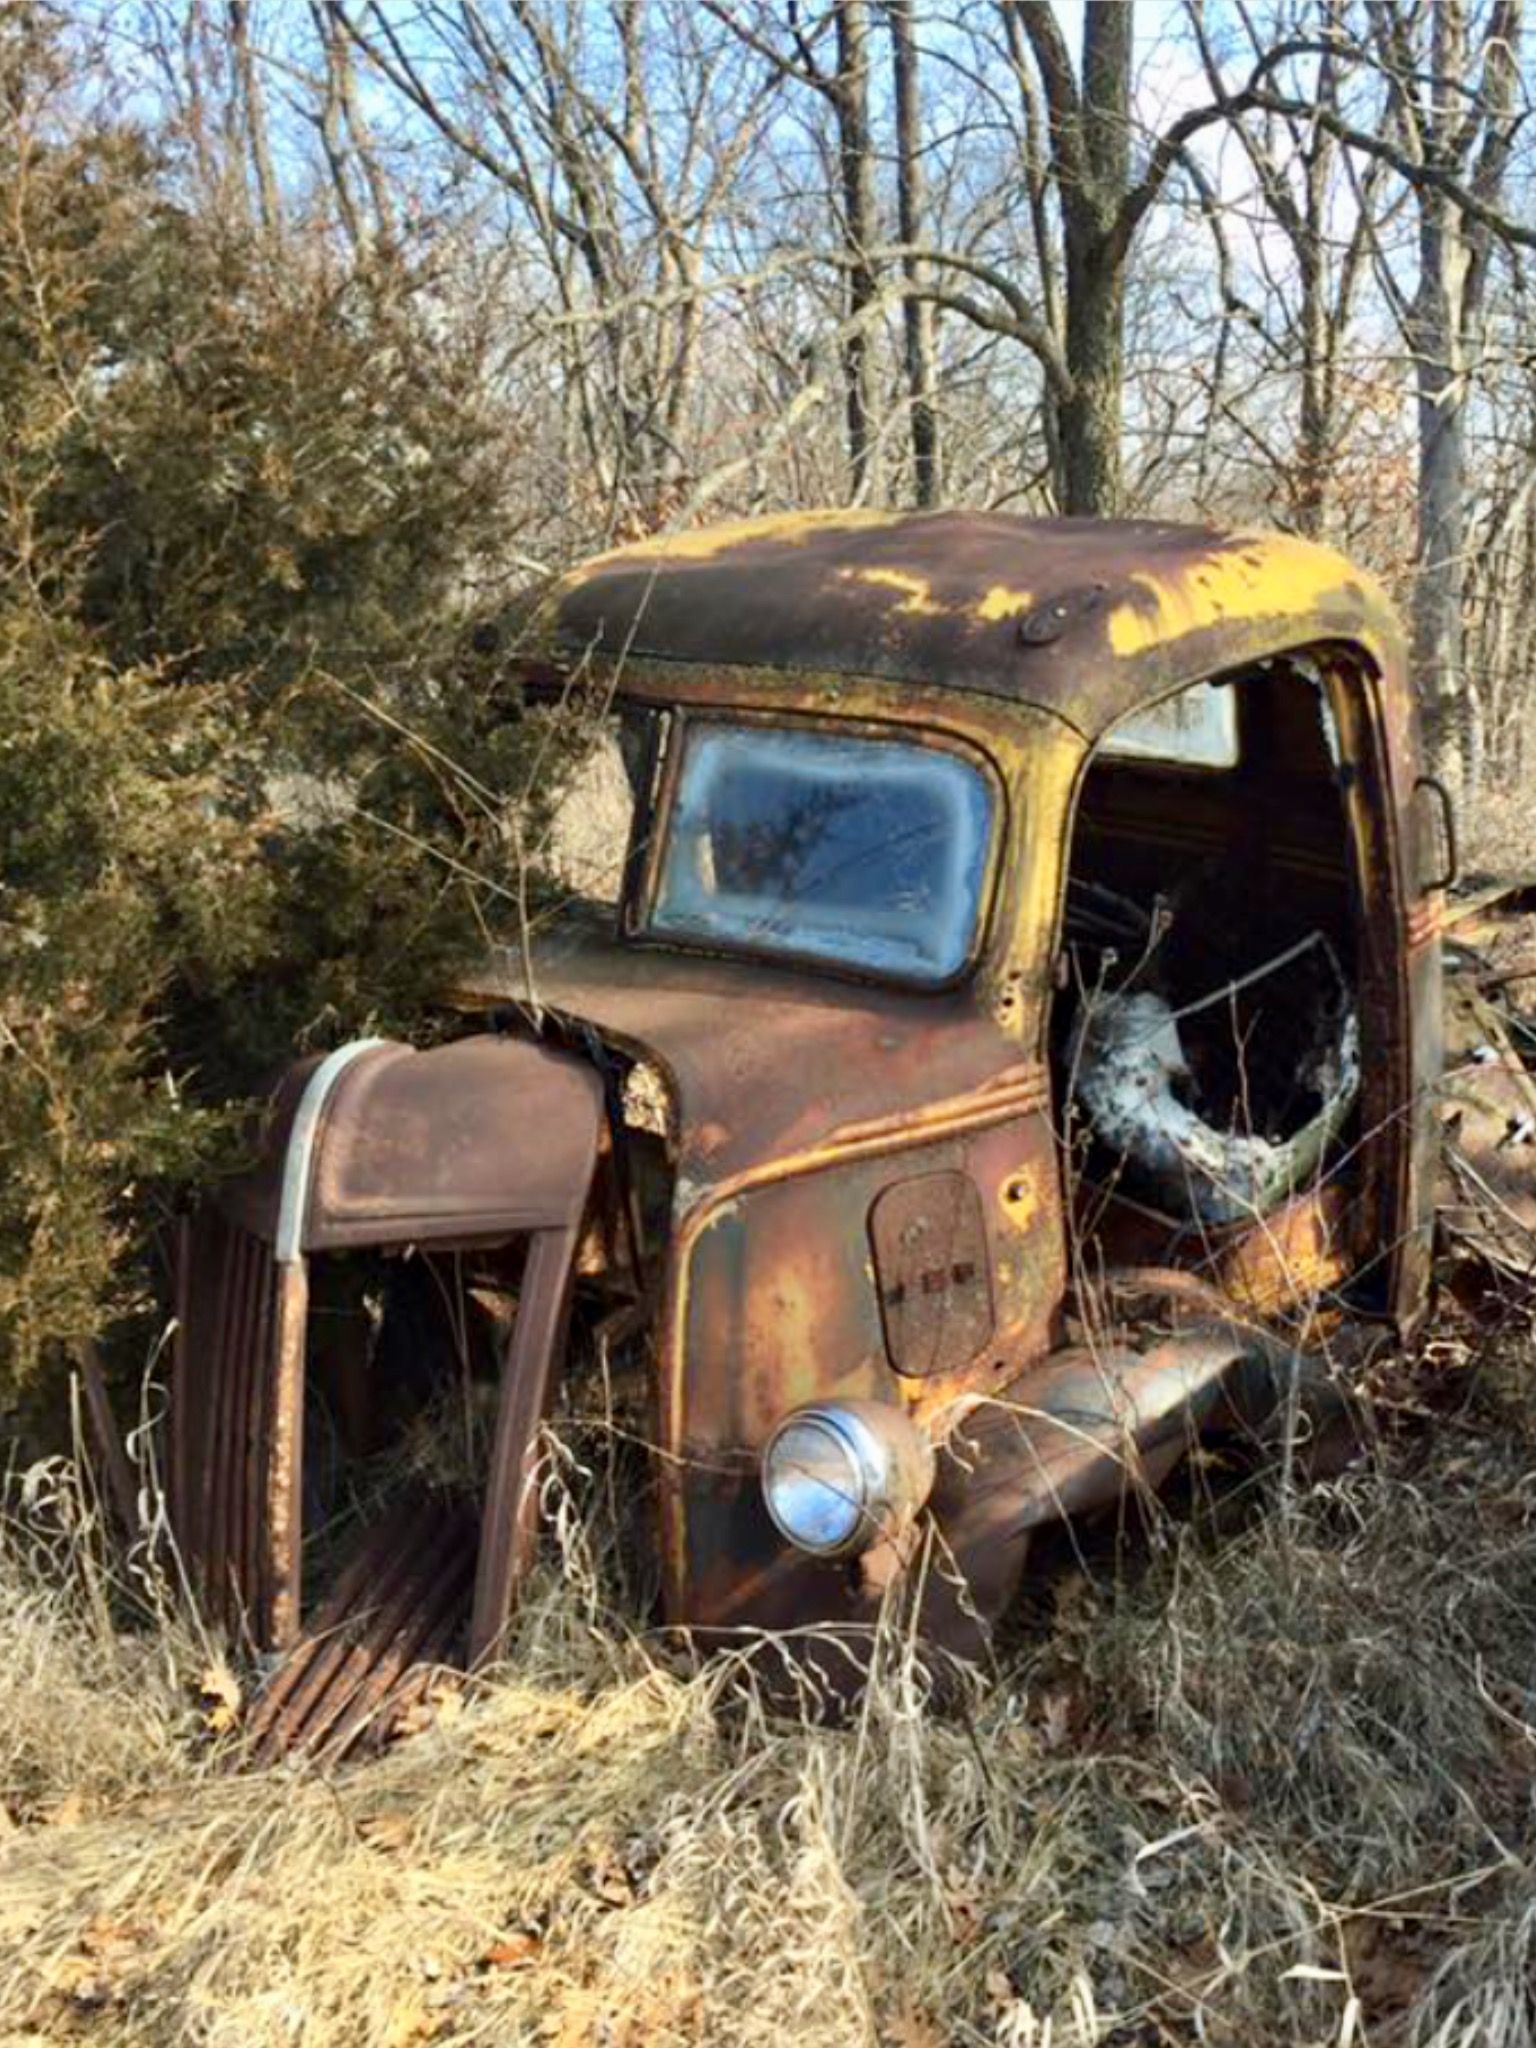 Old Abandoned Car In The Cargraveyard Source Facebook Com